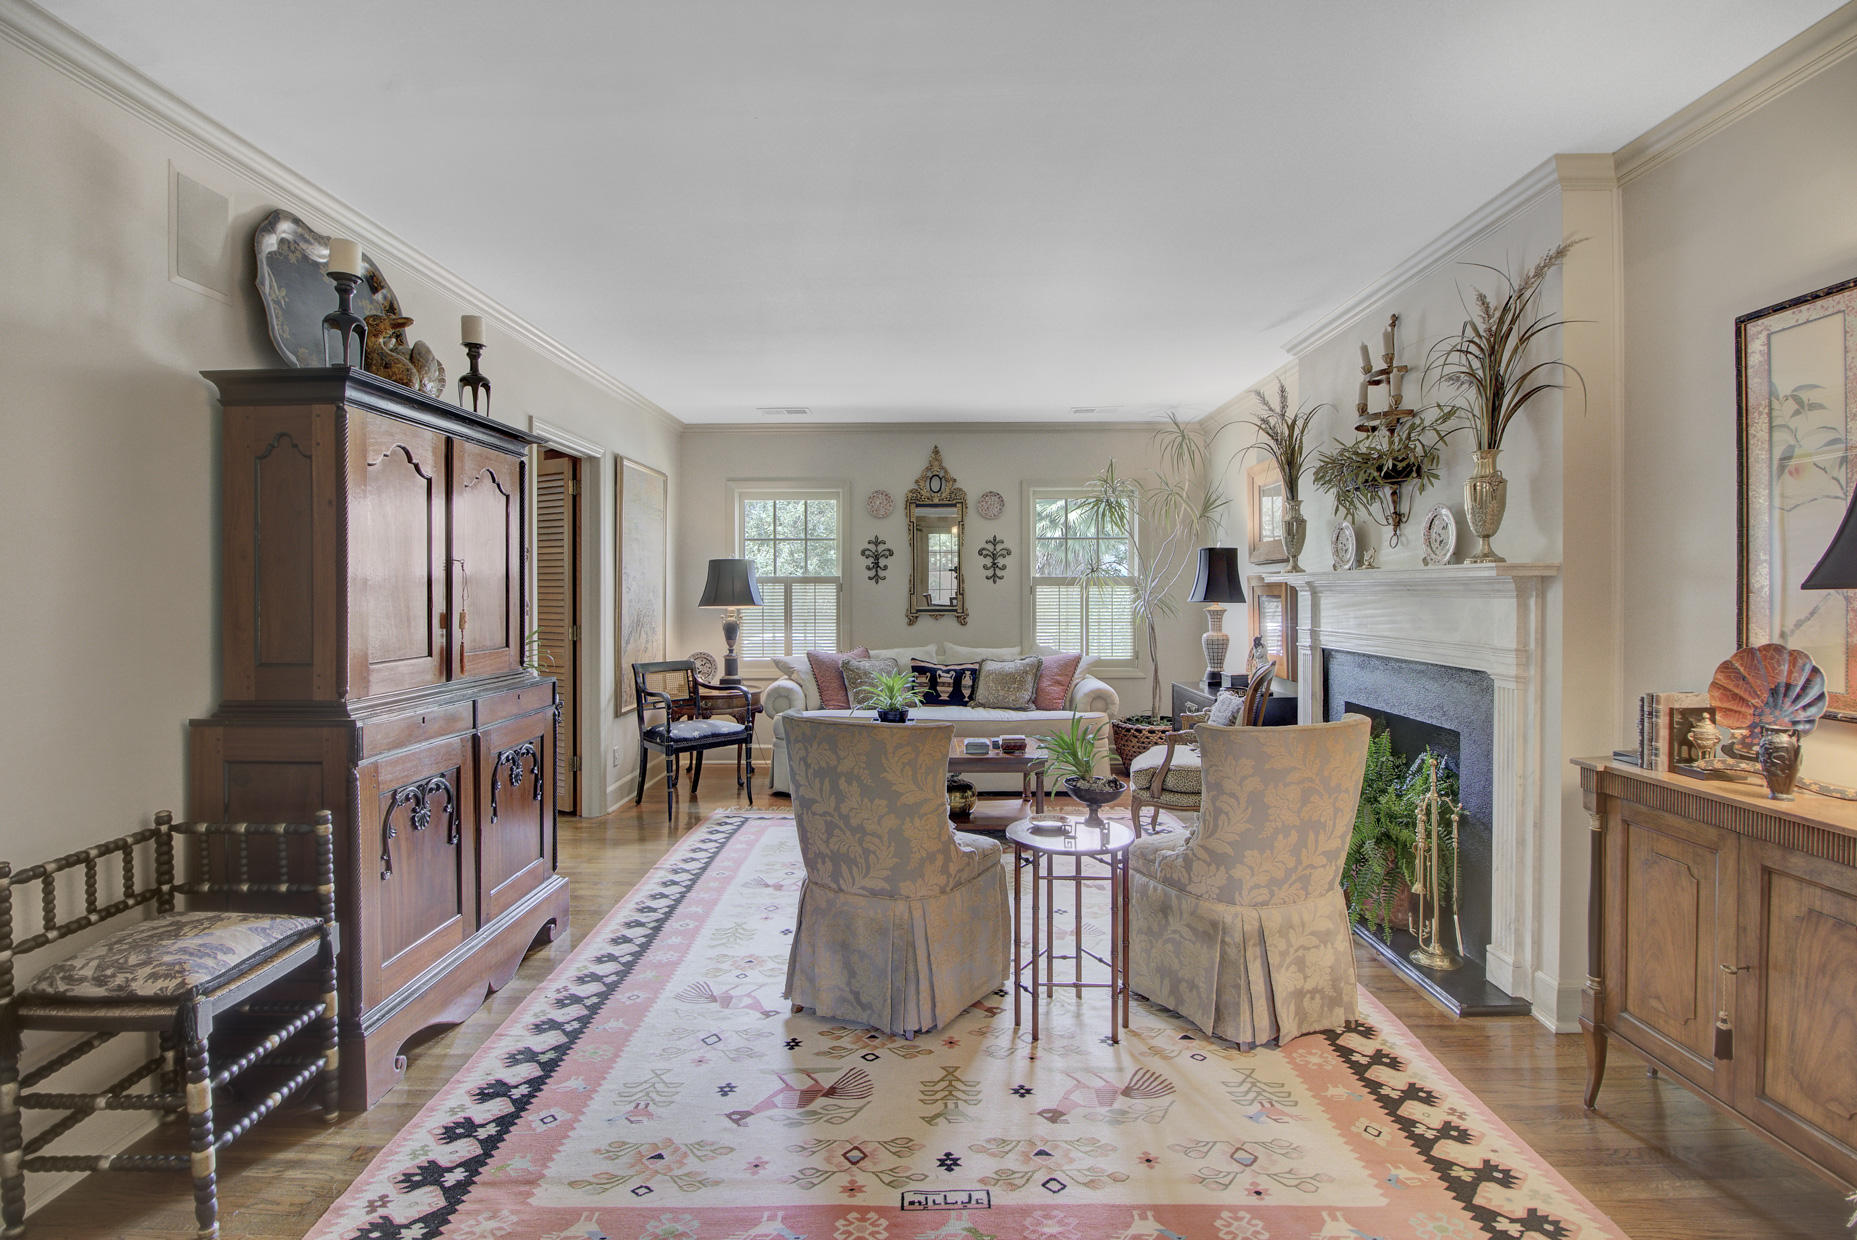 South of Broad Homes For Sale - 2 Colonial, Charleston, SC - 1